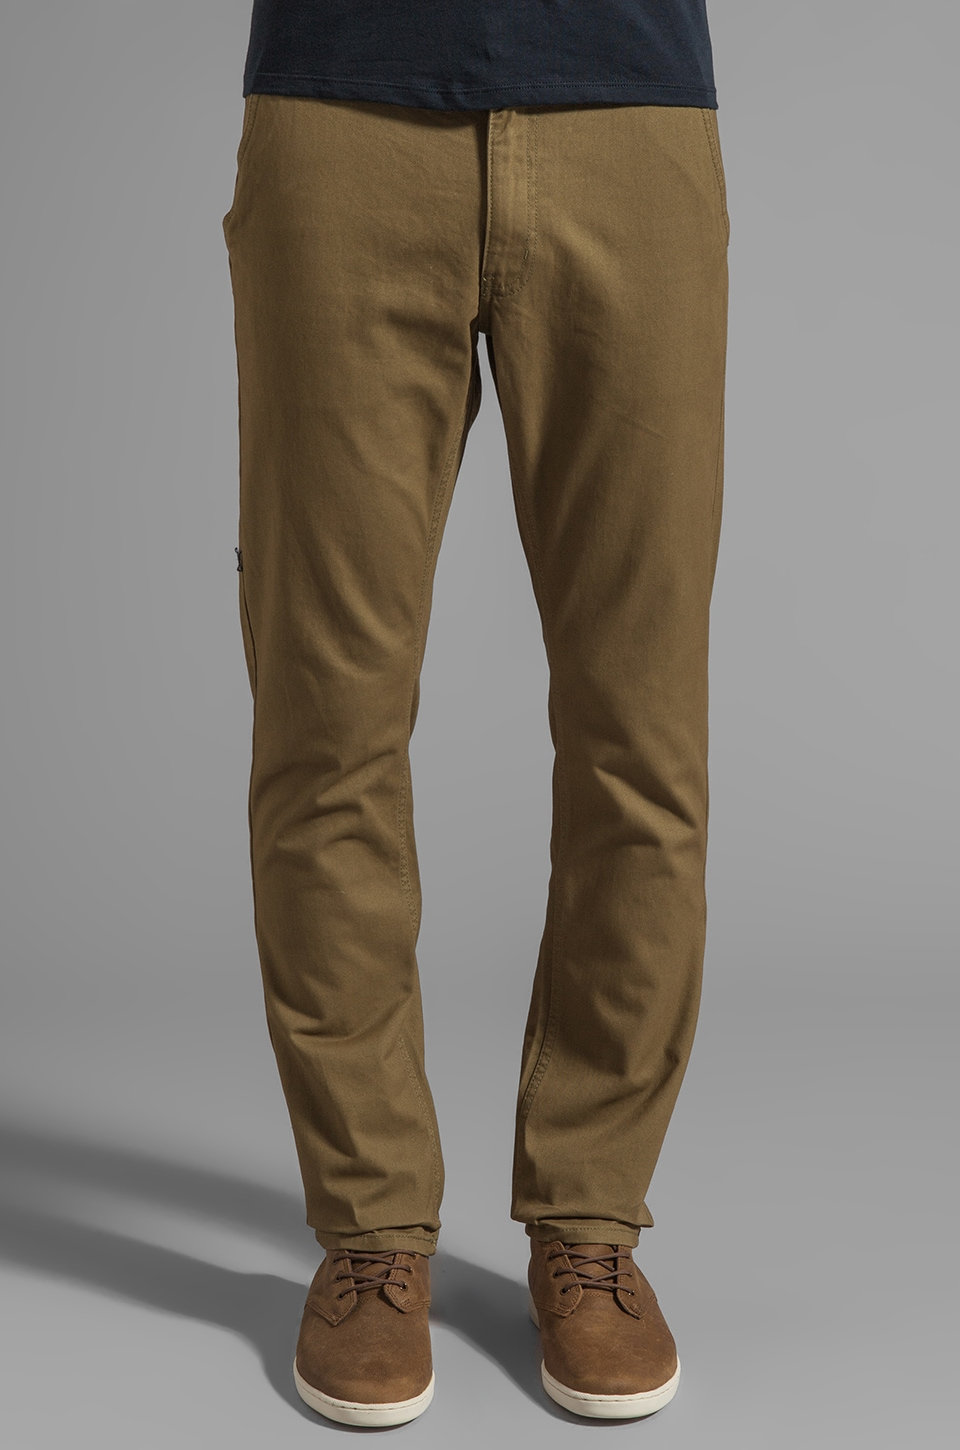 Cheap Monday Slim Chino in Earth Green